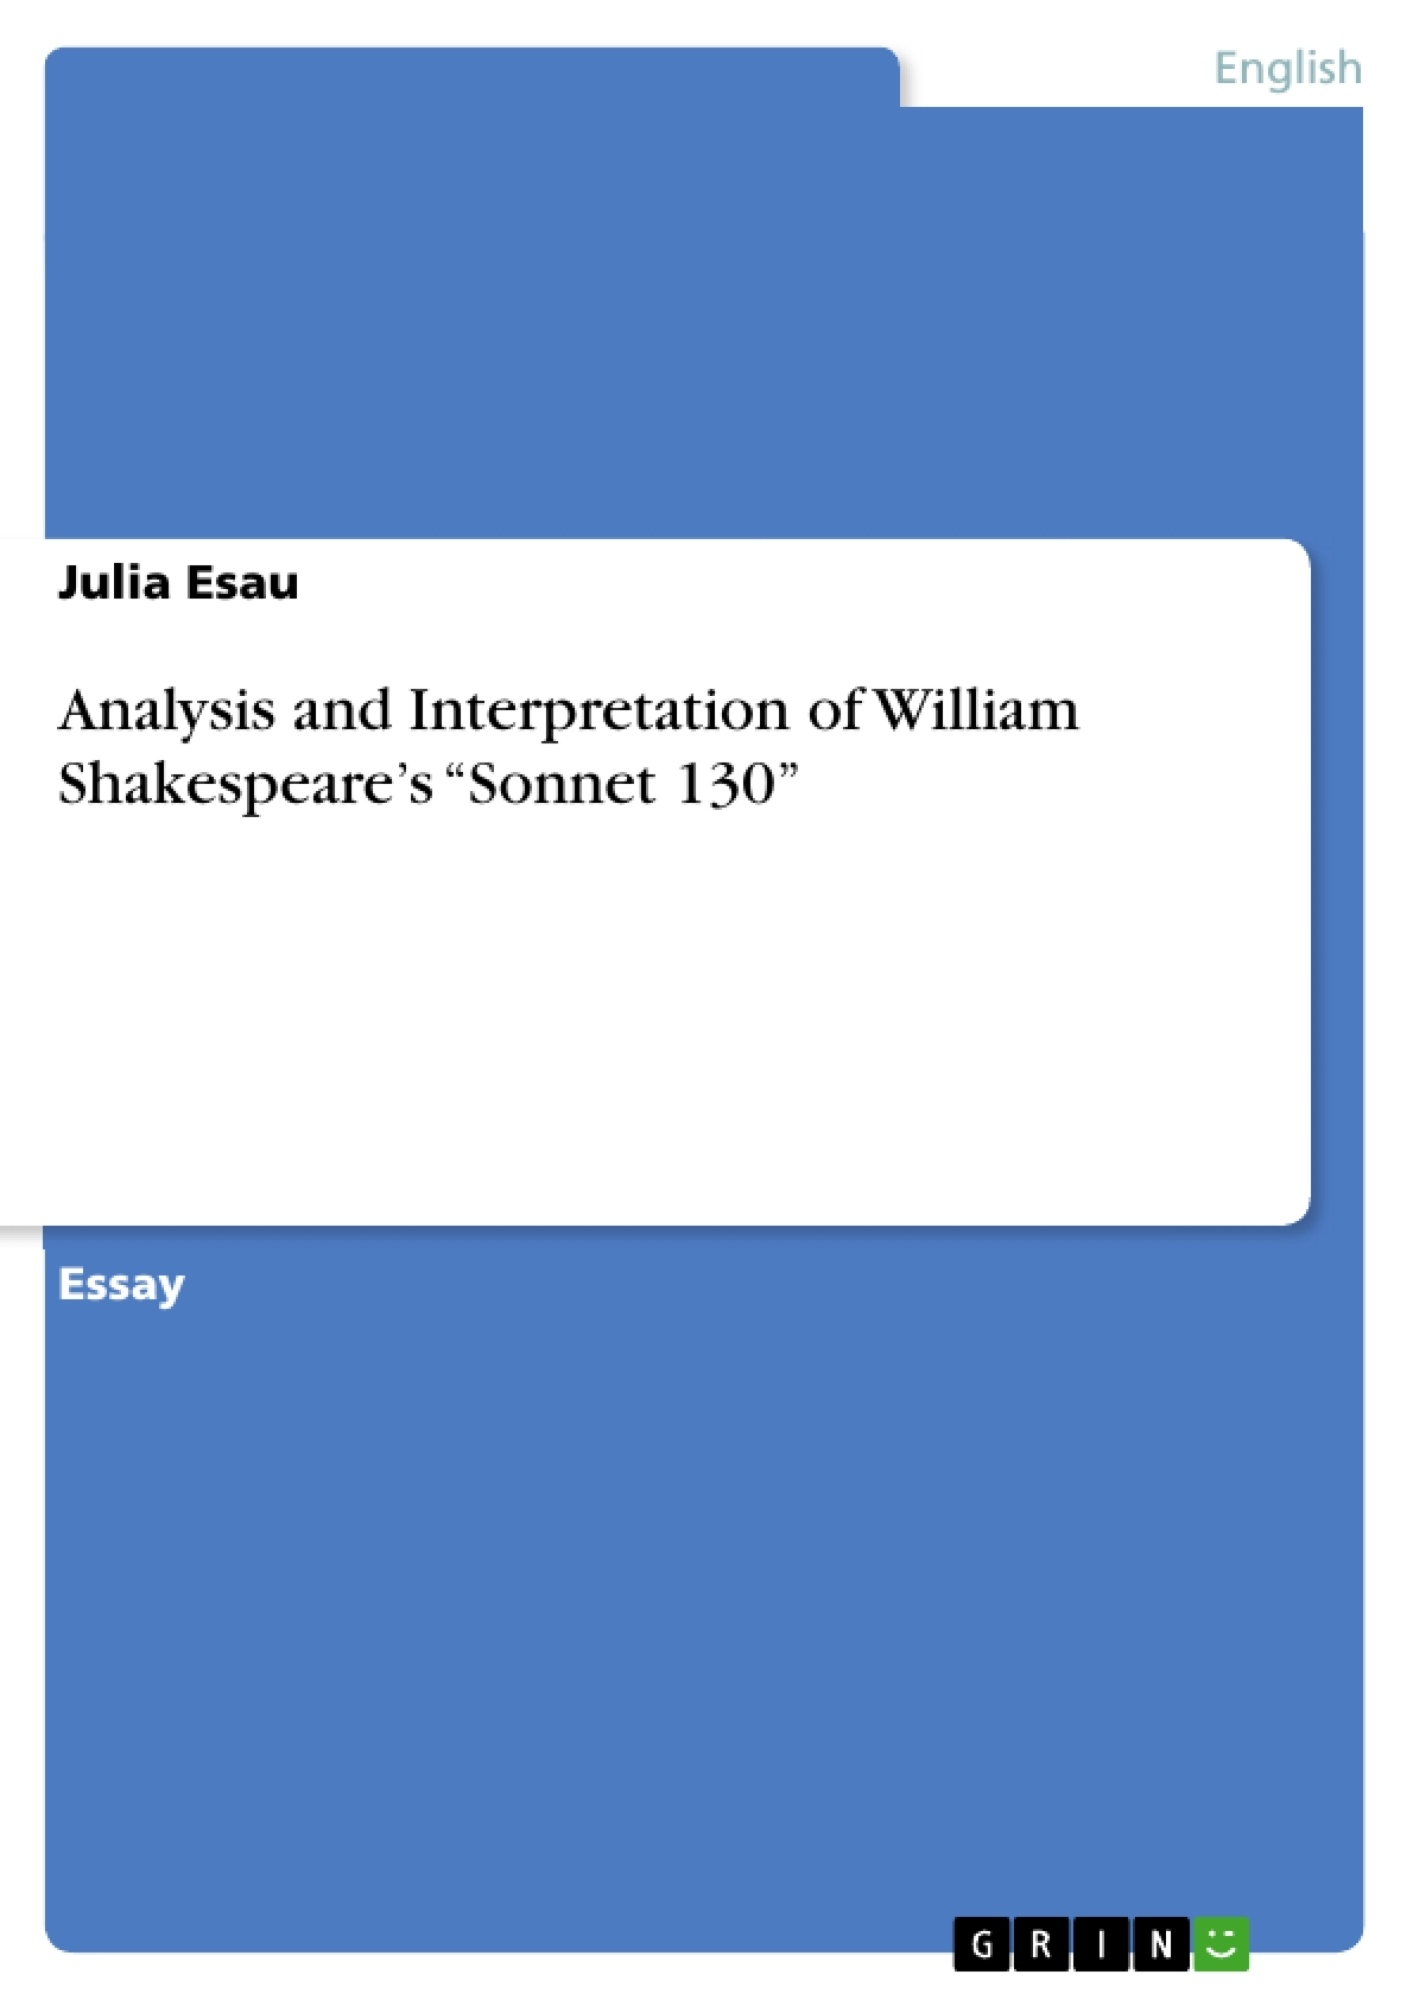 analysis and interpretation of william shakespeare s sonnet  analysis and interpretation of william shakespeare s sonnet 130 publish your master s thesis bachelor s thesis essay or term paper